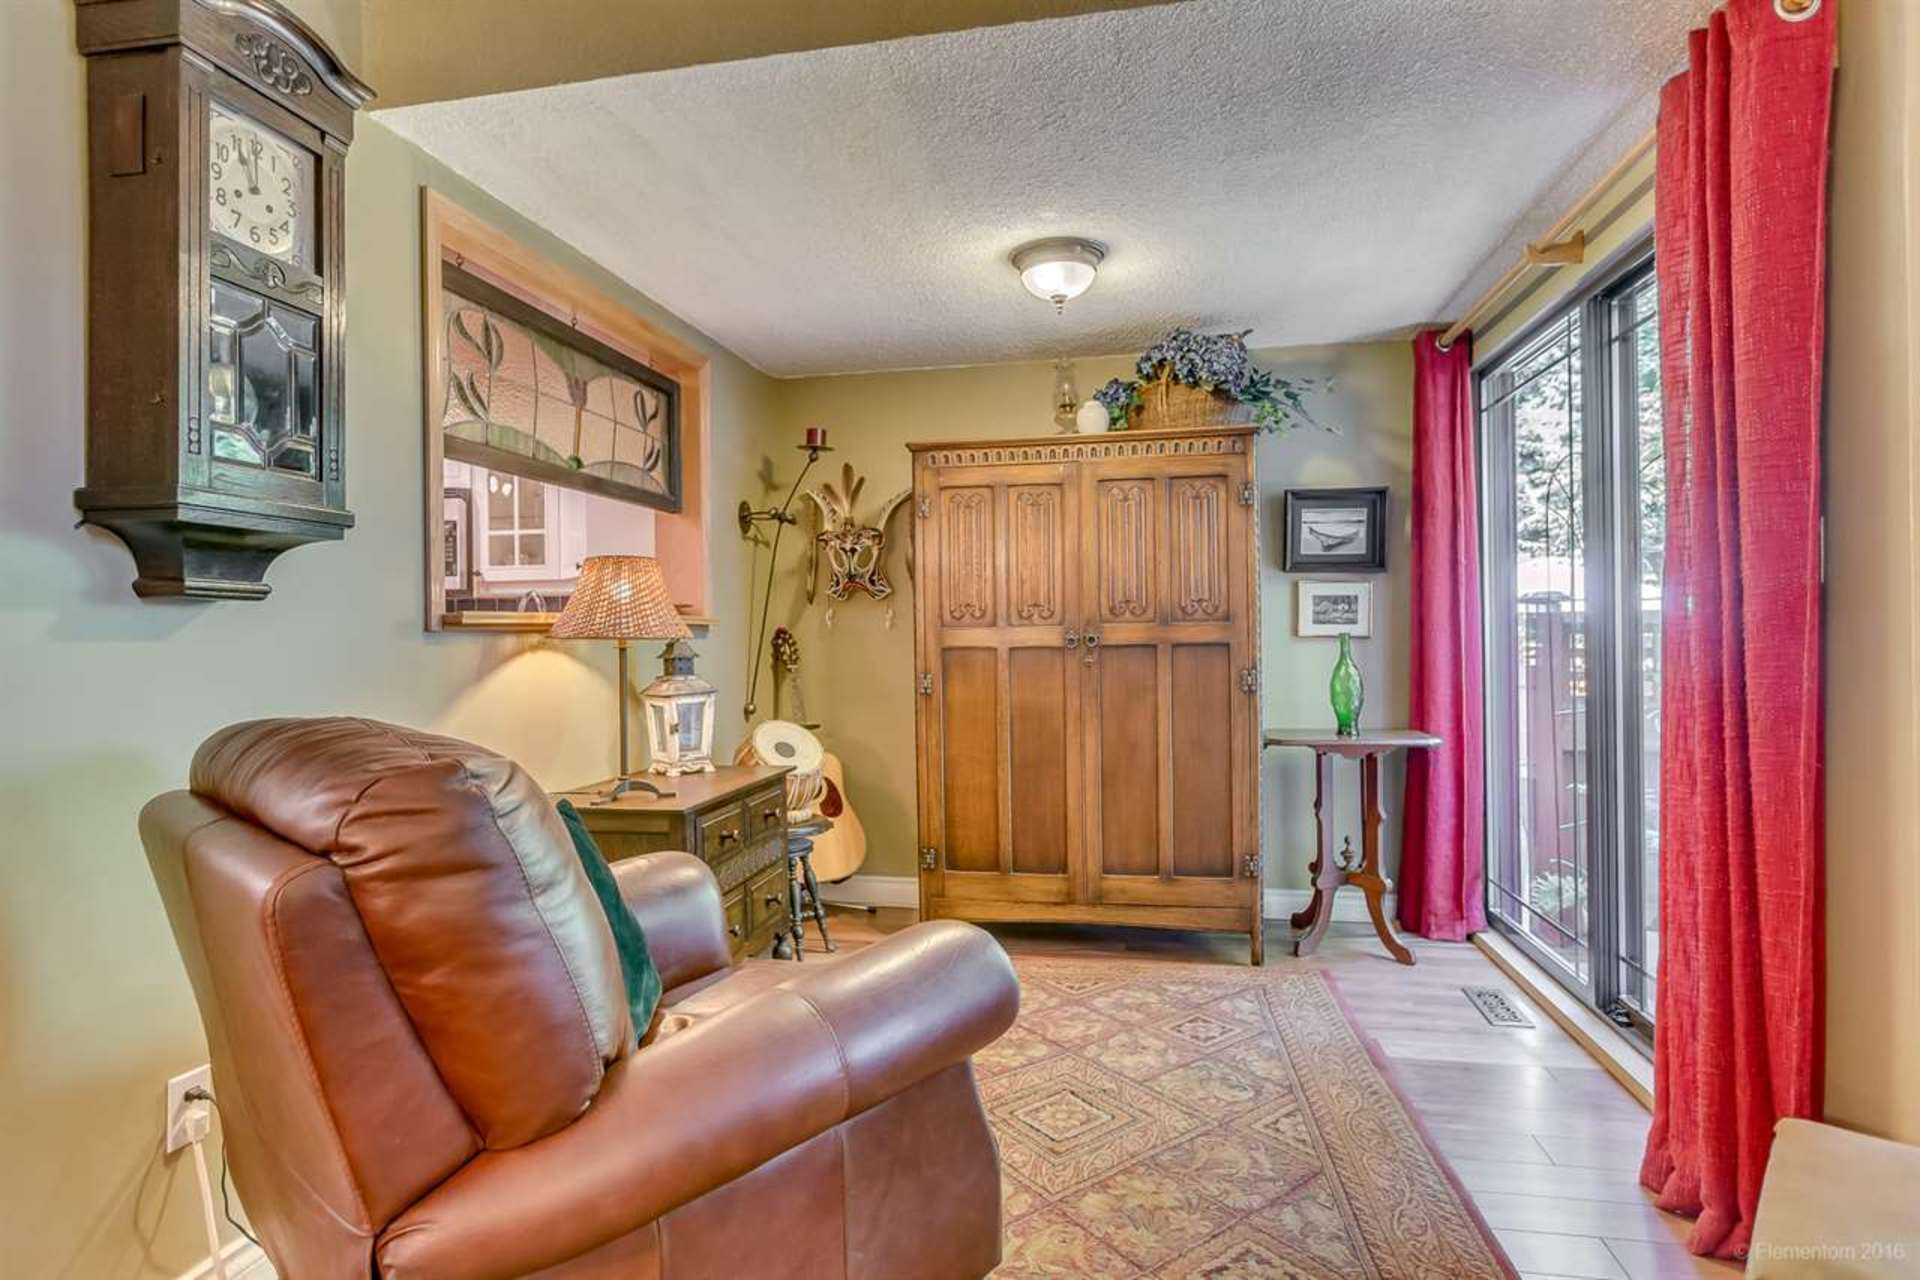 image-262100069-7 at 4857 Fernglen Drive, Greentree Village, Burnaby South